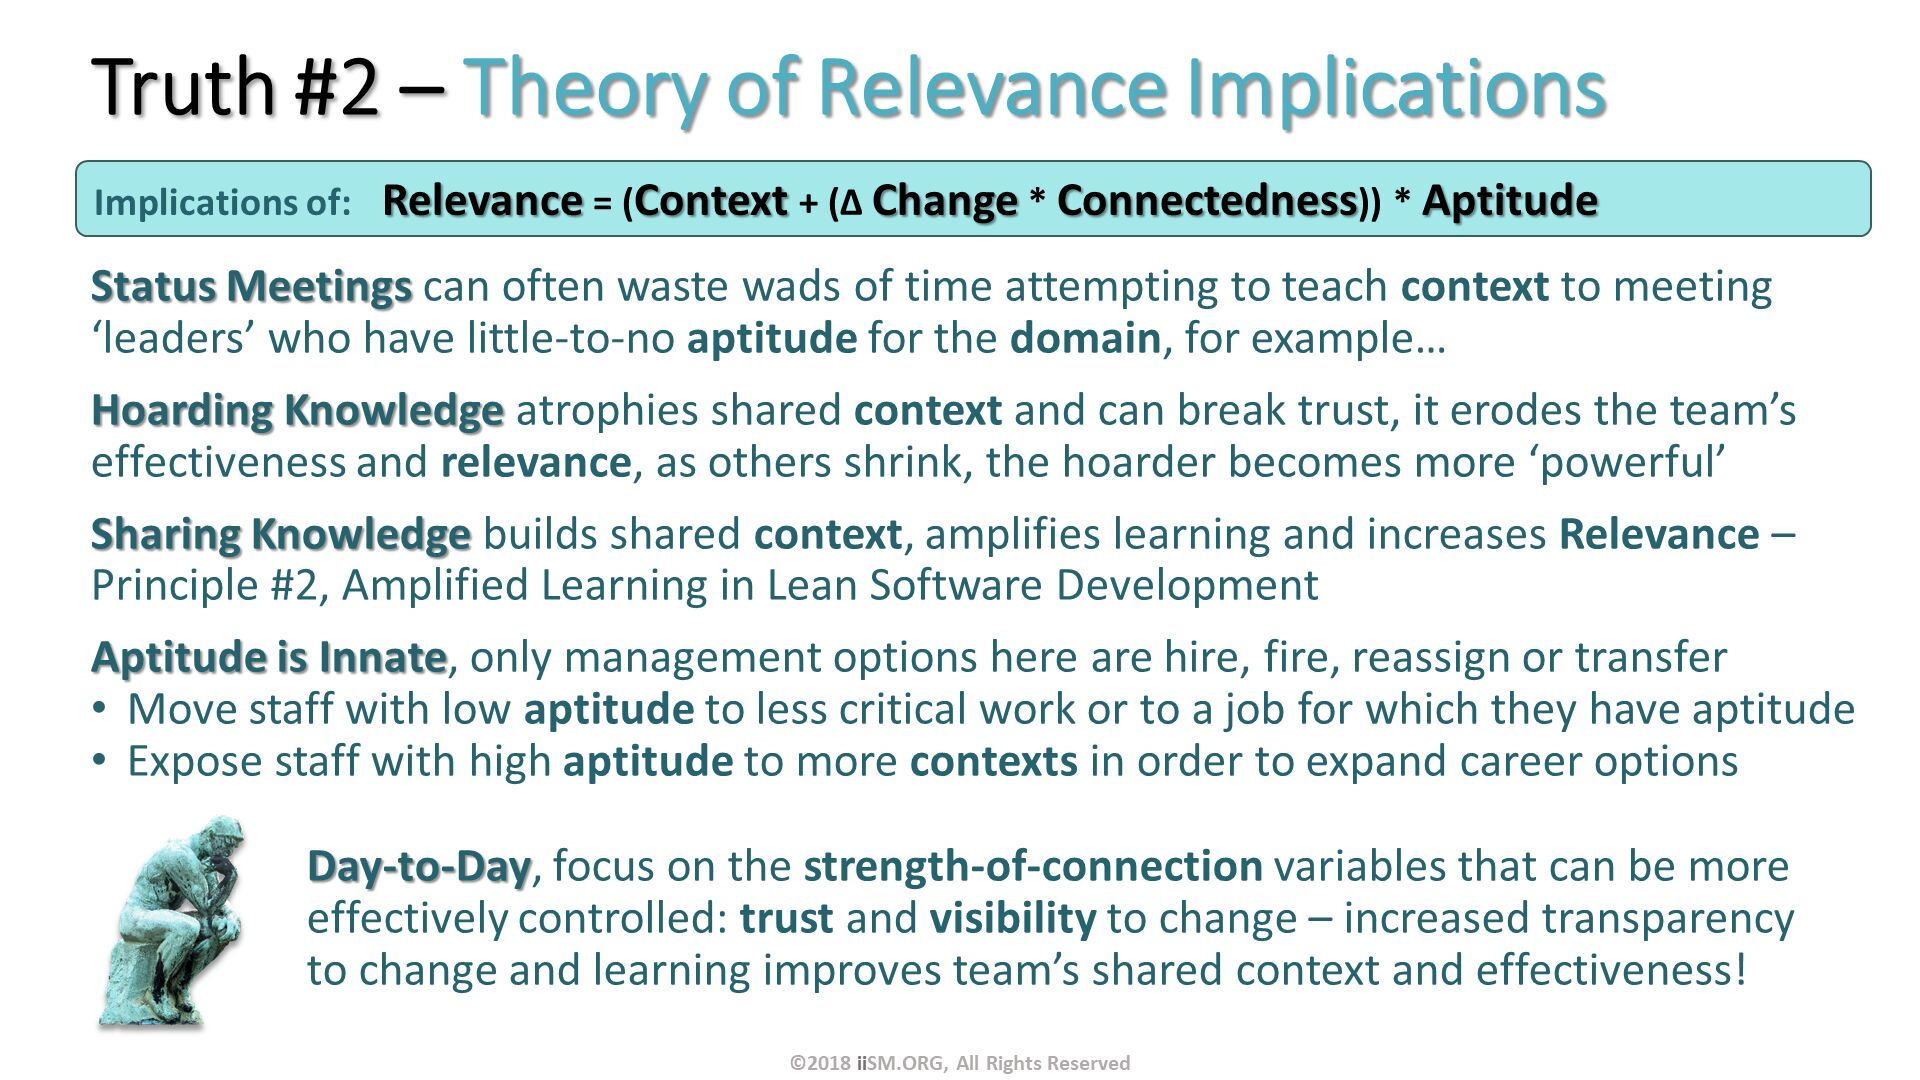 Truth #2 – Theory of Relevance Implications. Status Meetings can often waste wads of time attempting to teach context to meeting 'leaders' who have little-to-no aptitude for the domain, for example… Hoarding Knowledge atrophies shared context and can break trust, it erodes the team's effectiveness and relevance, as others shrink, the hoarder becomes more 'powerful'  Sharing Knowledge builds shared context, amplifies learning and increases Relevance – Principle #2, Amplified Learning in Lean Software Development Aptitude is Innate, only management options here are hire, fire, reassign or transfer Move staff with low aptitude to less critical work or to a job for which they have aptitude Expose staff with high aptitude to more contexts in order to expand career options Day-to-Day, focus on the strength-of-connection variables that can be more effectively controlled: trust and visibility to change – increased transparency to change and learning improves team's shared context and effectiveness!. Implications of:	Relevance = (Context + (∆ Change * Connectedness)) * Aptitude . ©2018 iiSM.ORG, All Rights Reserved.